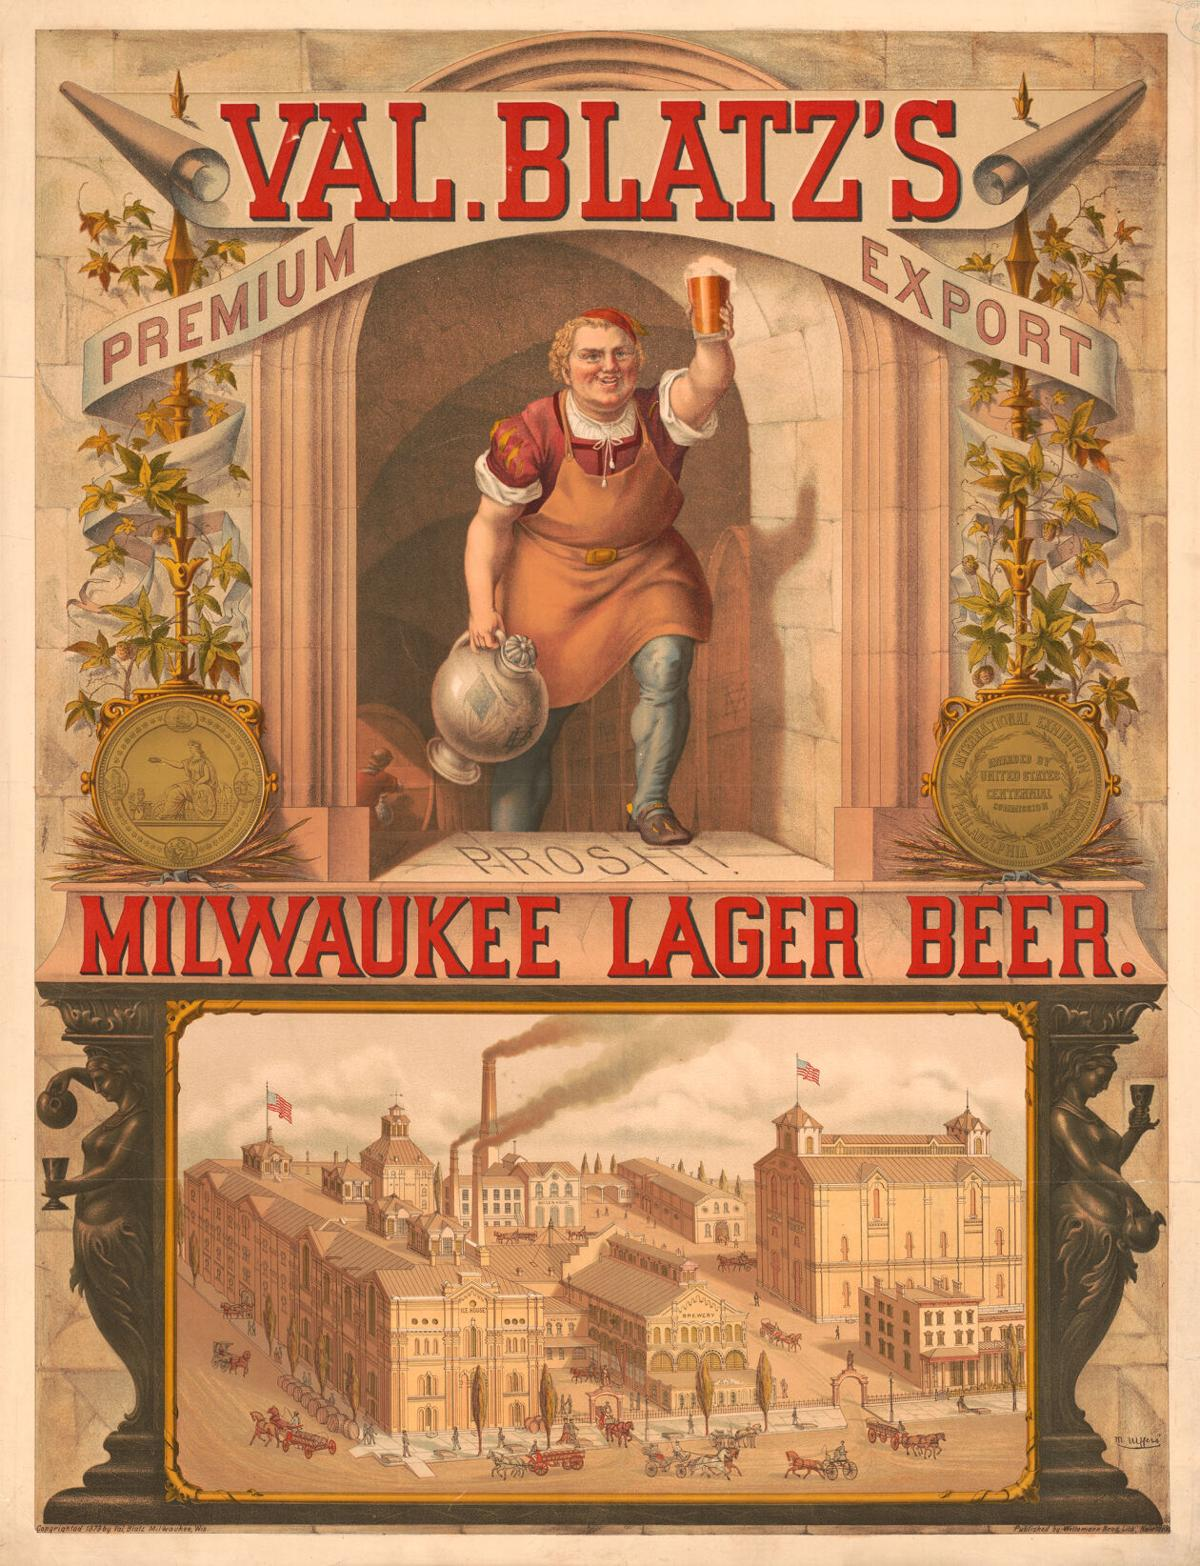 Milwaukee Lager Beer ad